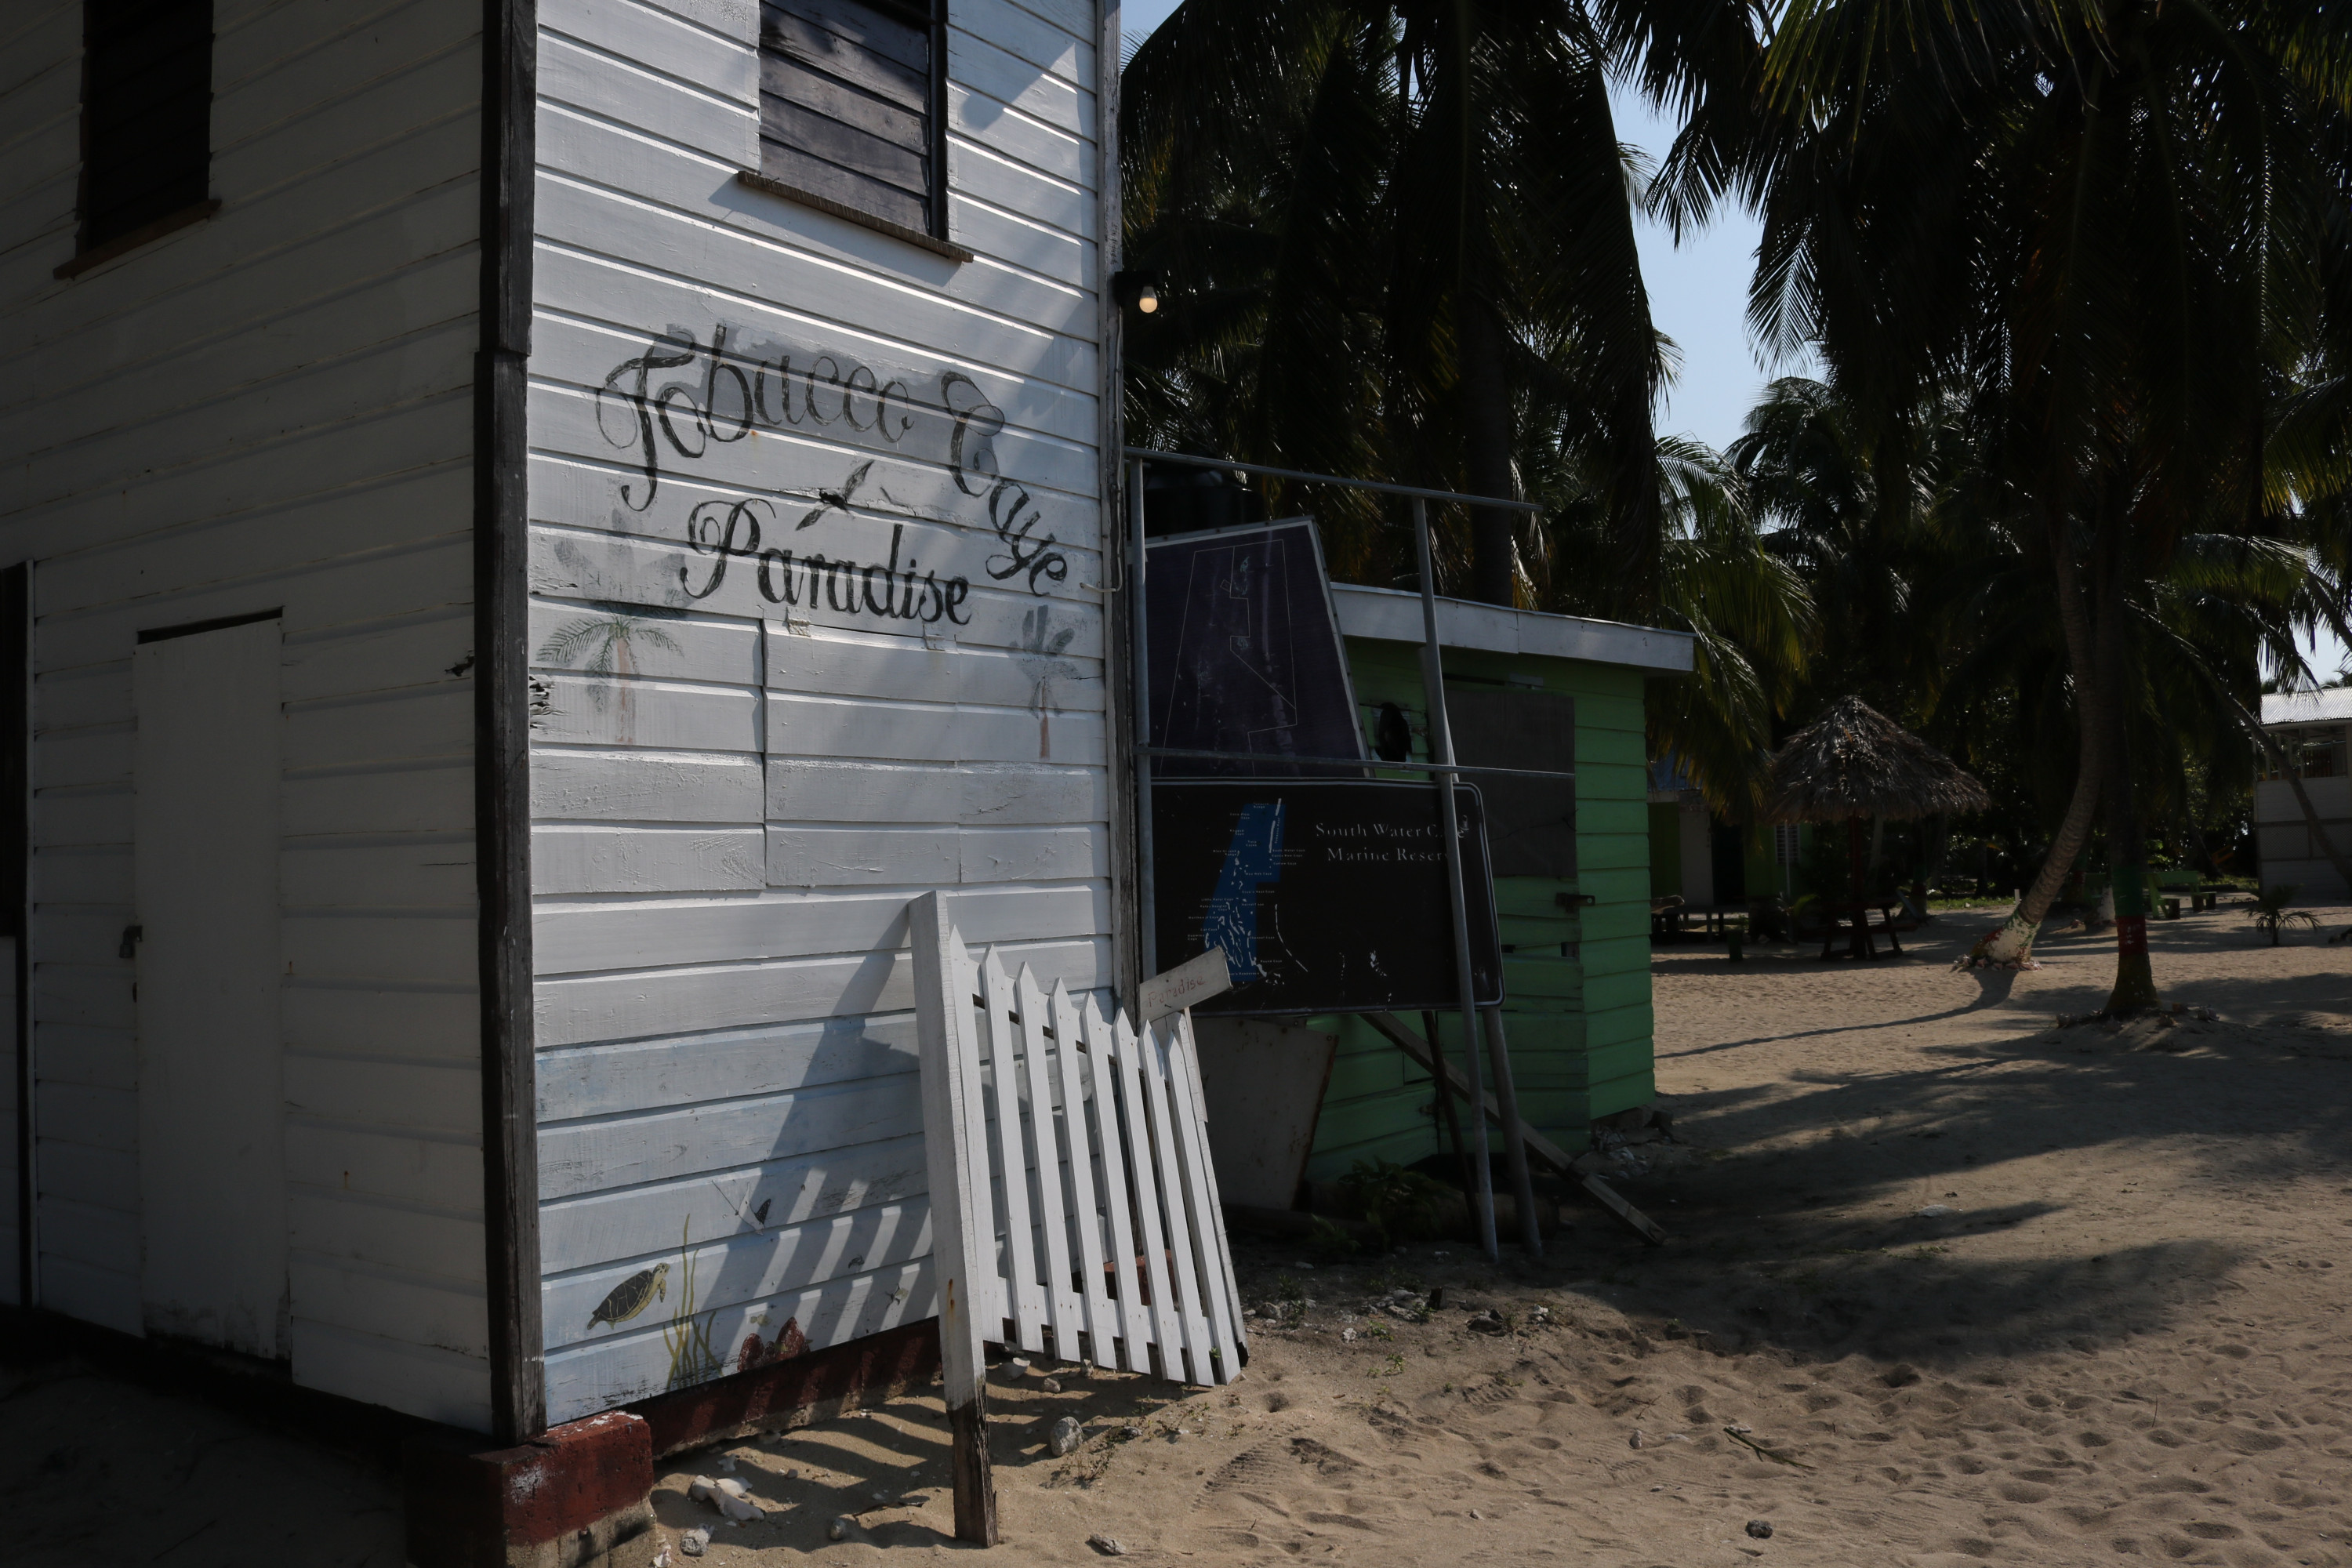 Sign on building welcoming visitors to the tobacco caye